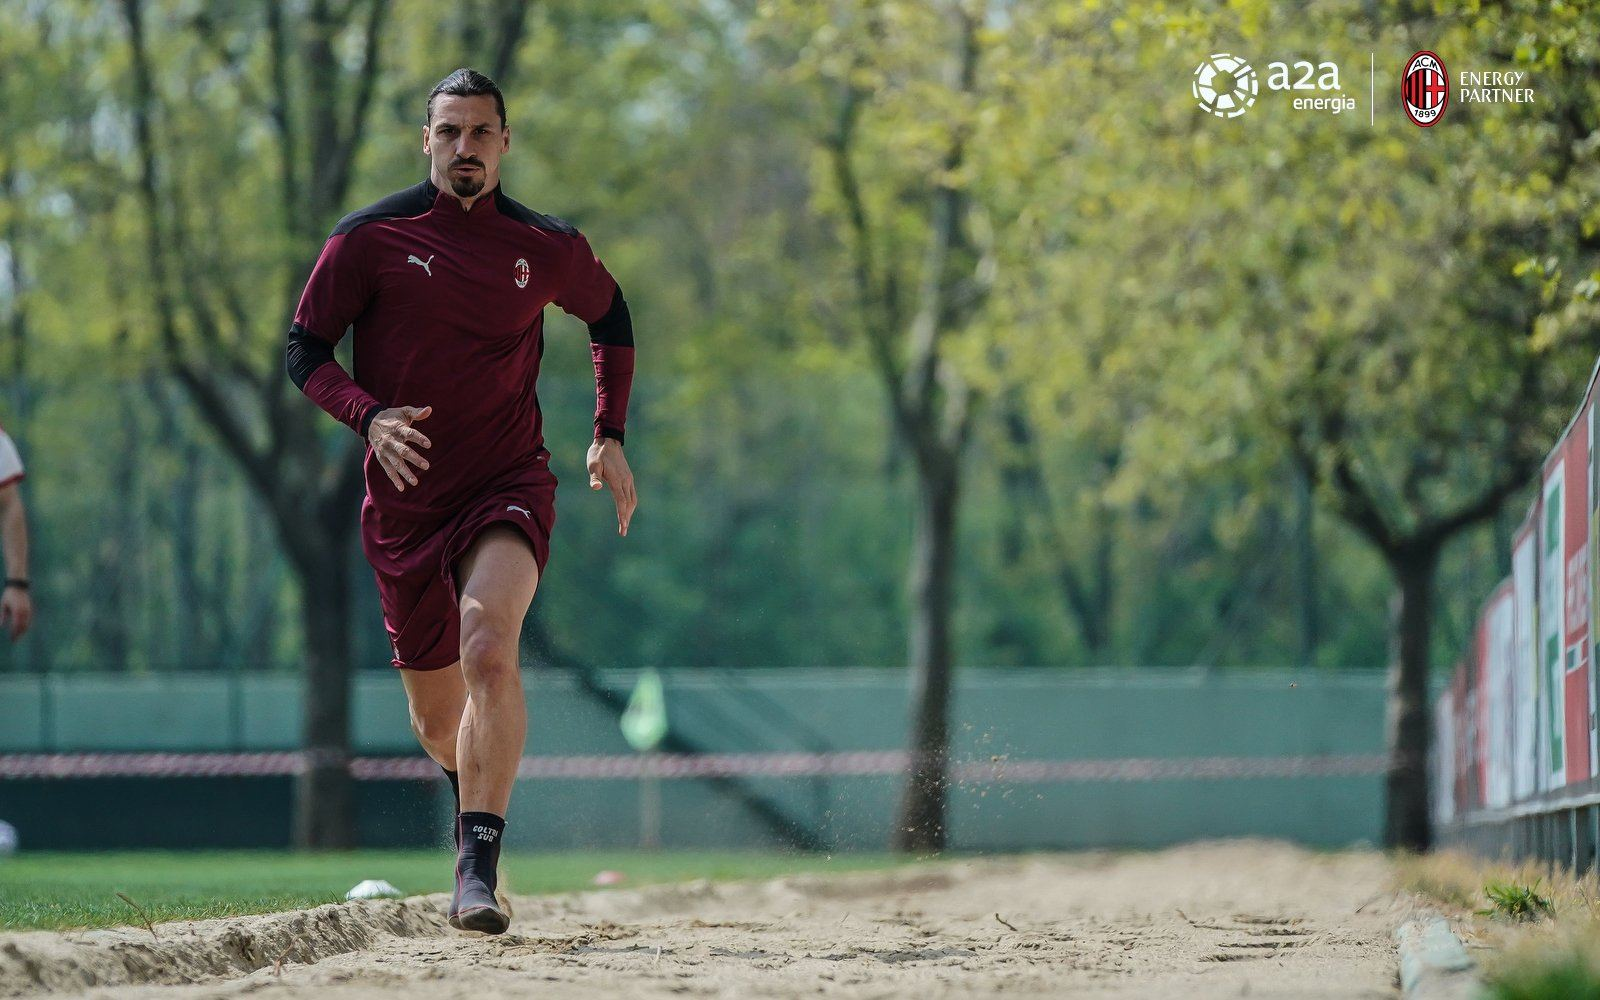 Zlatan Ibrahimovic training